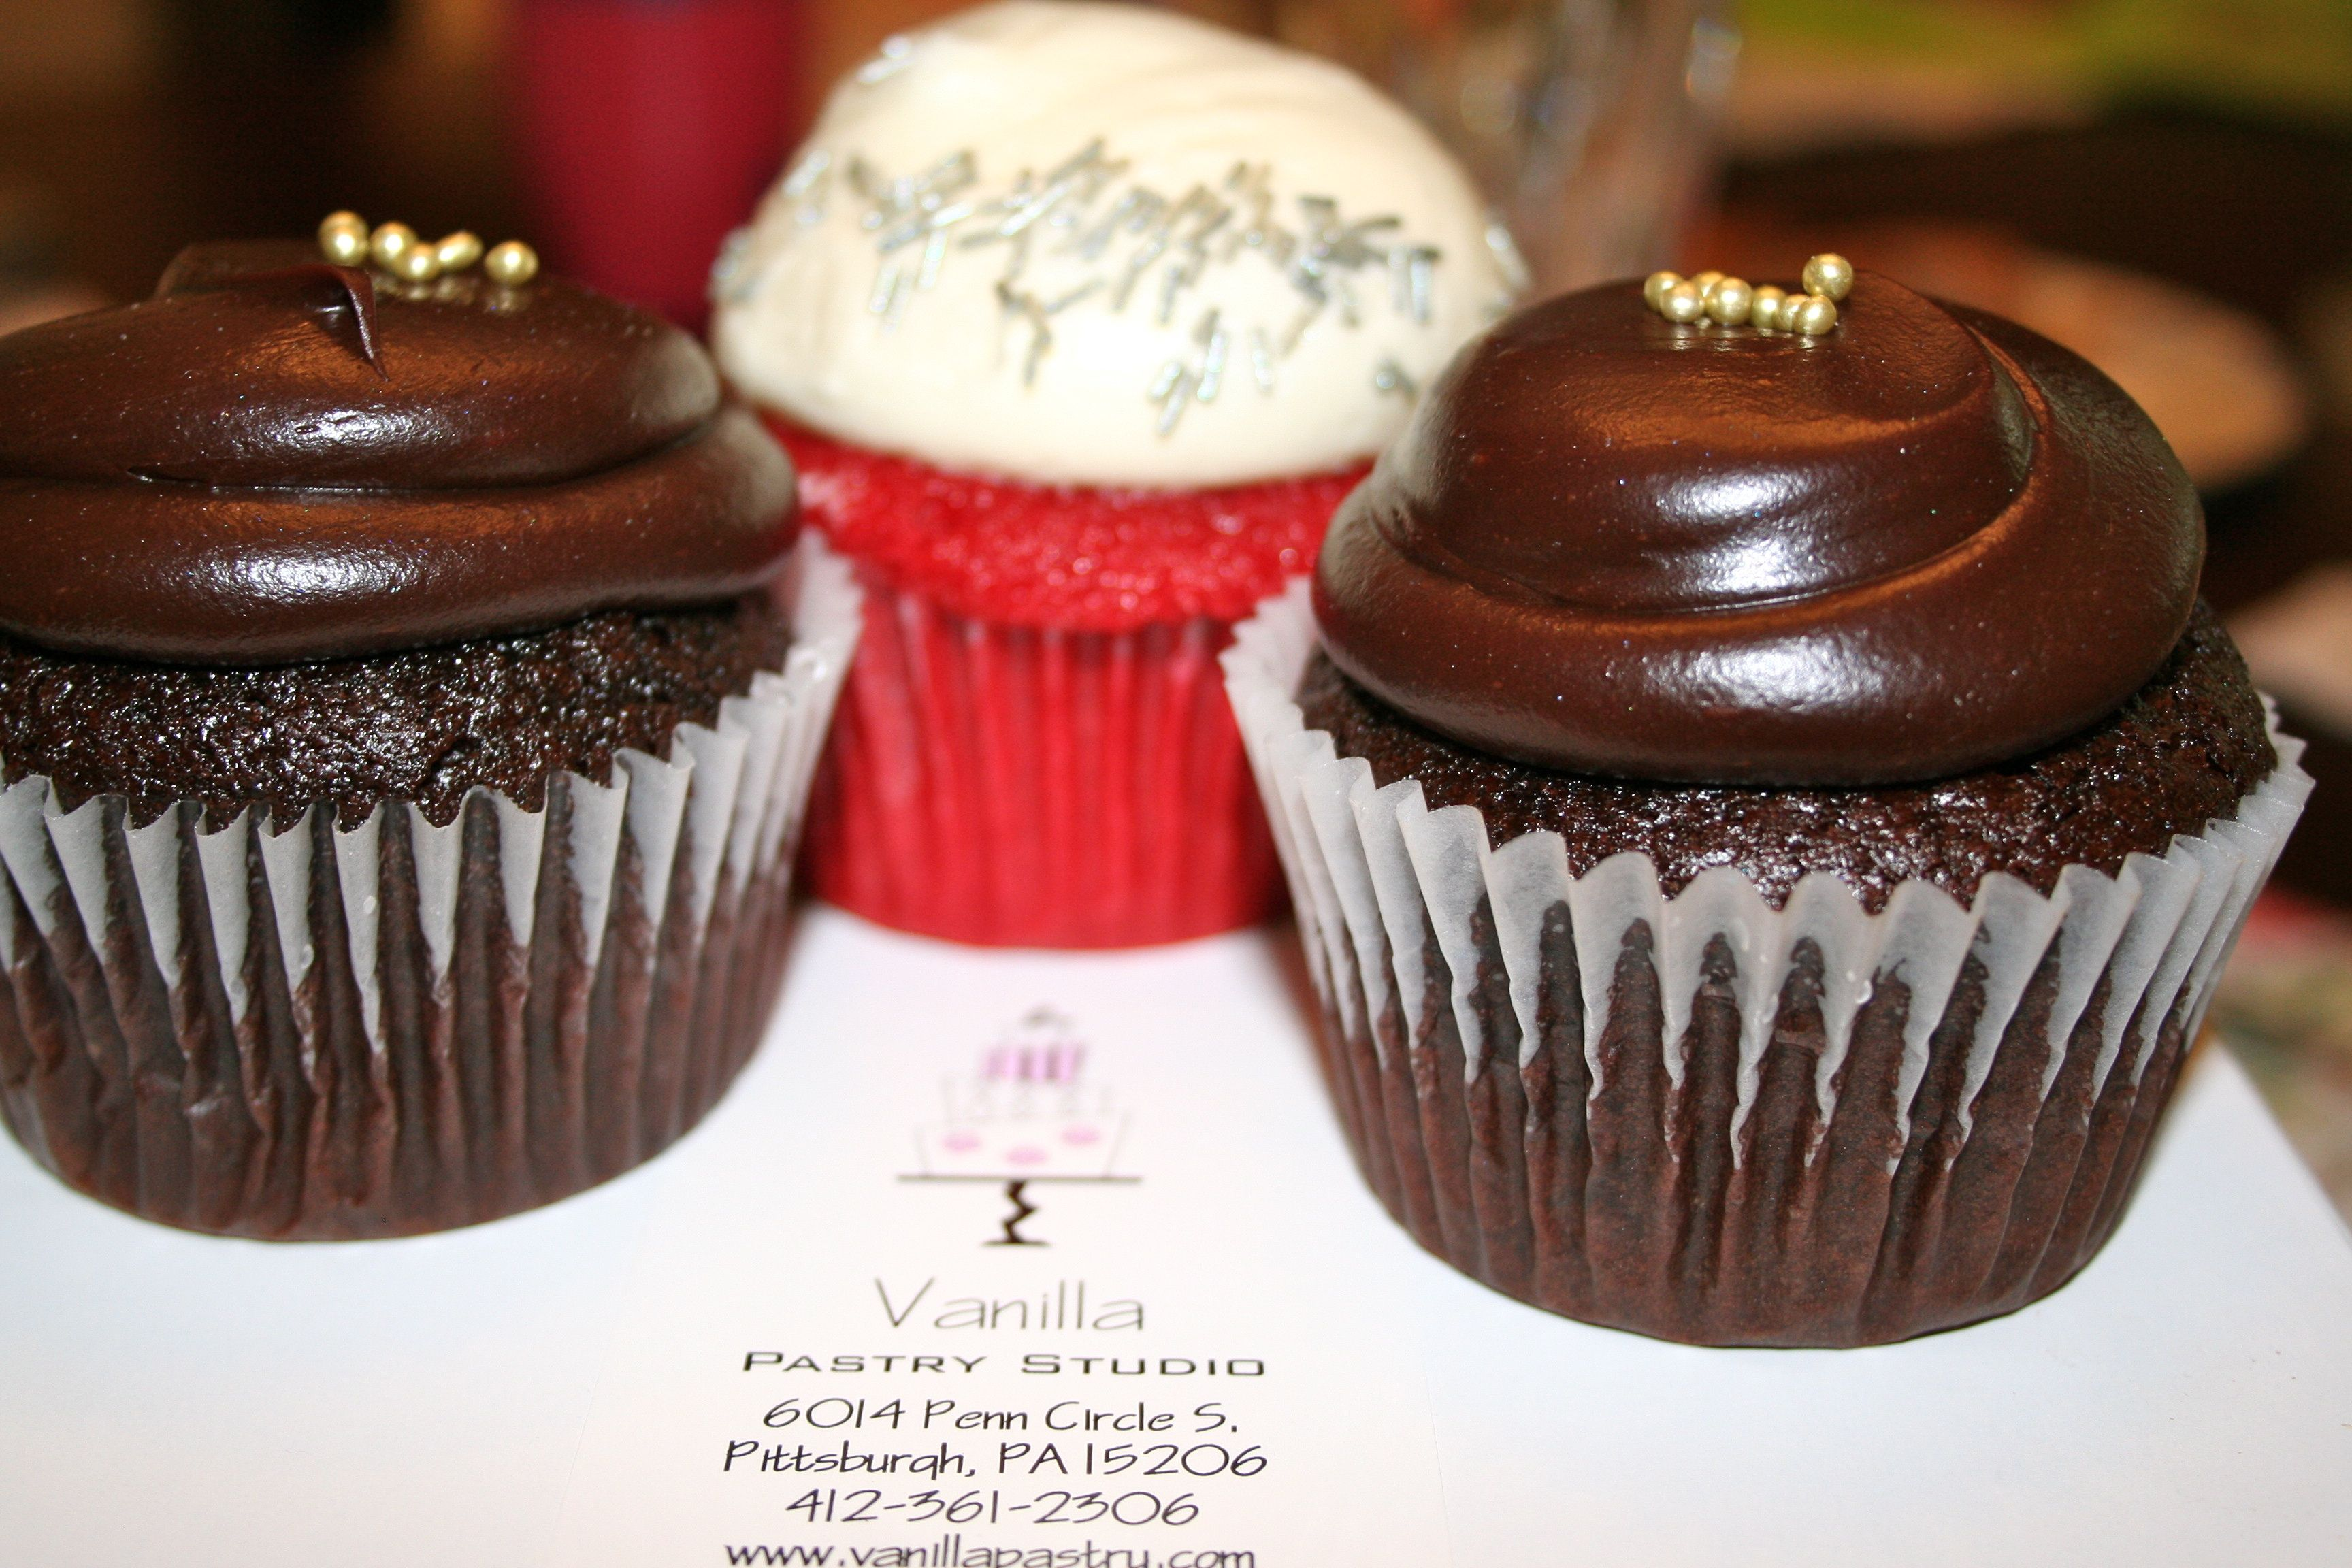 Double Fudge Chocolate and Red Velvet Cupcakes